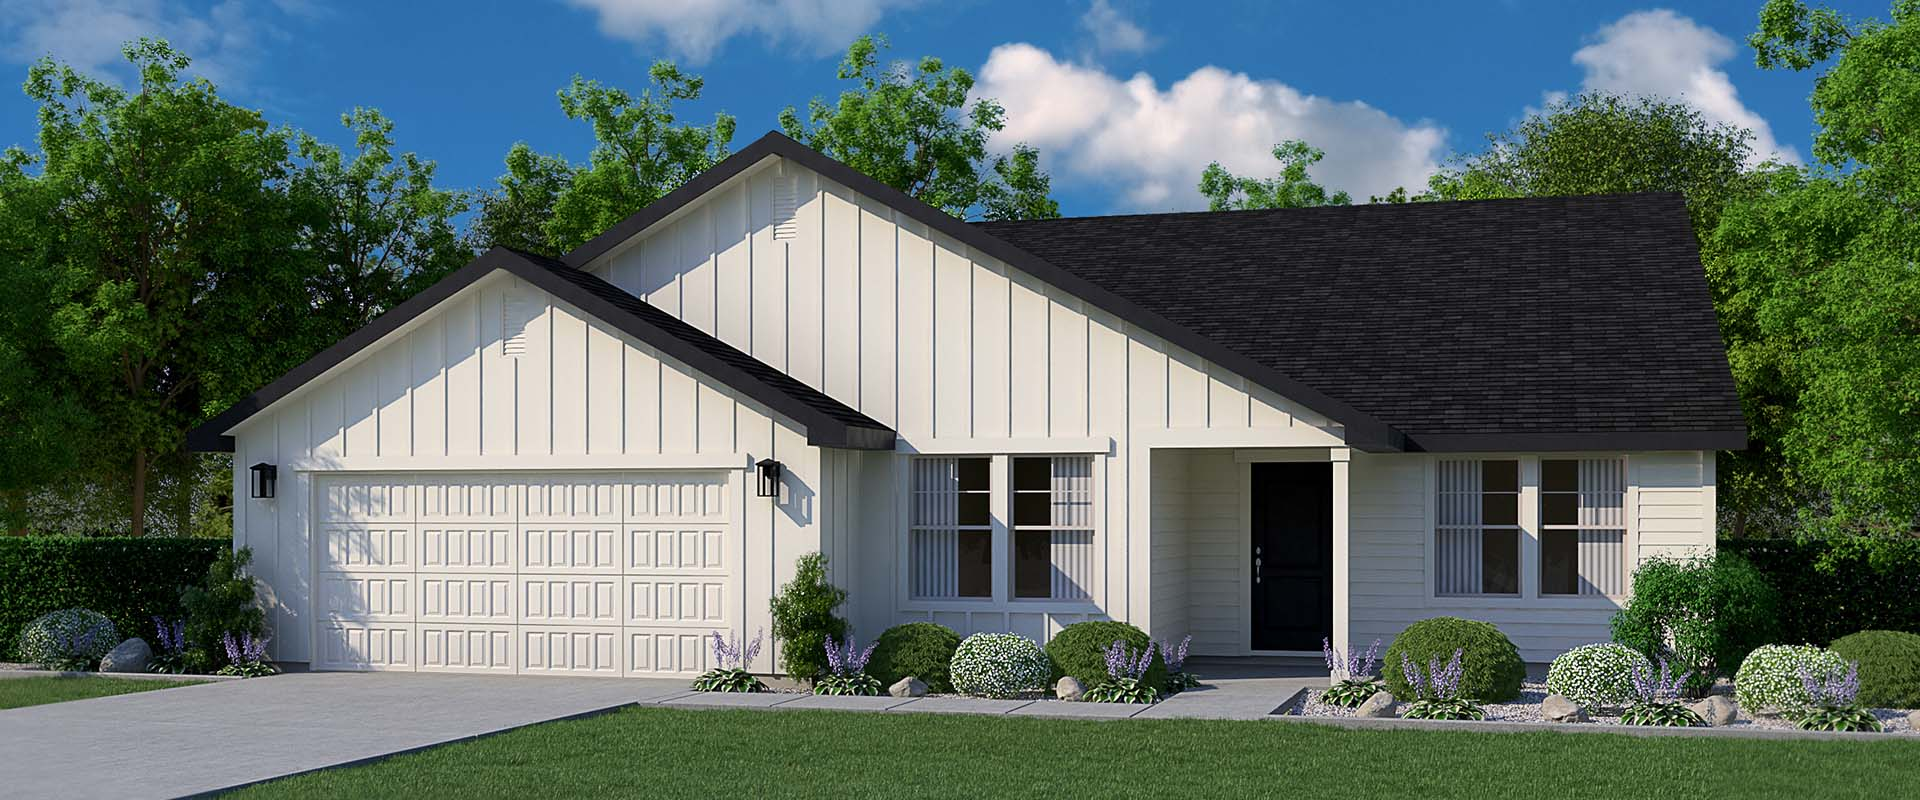 new-homes-boise-idaho-hubble-homes_0032_Emerald Traditional pack 32.jpg